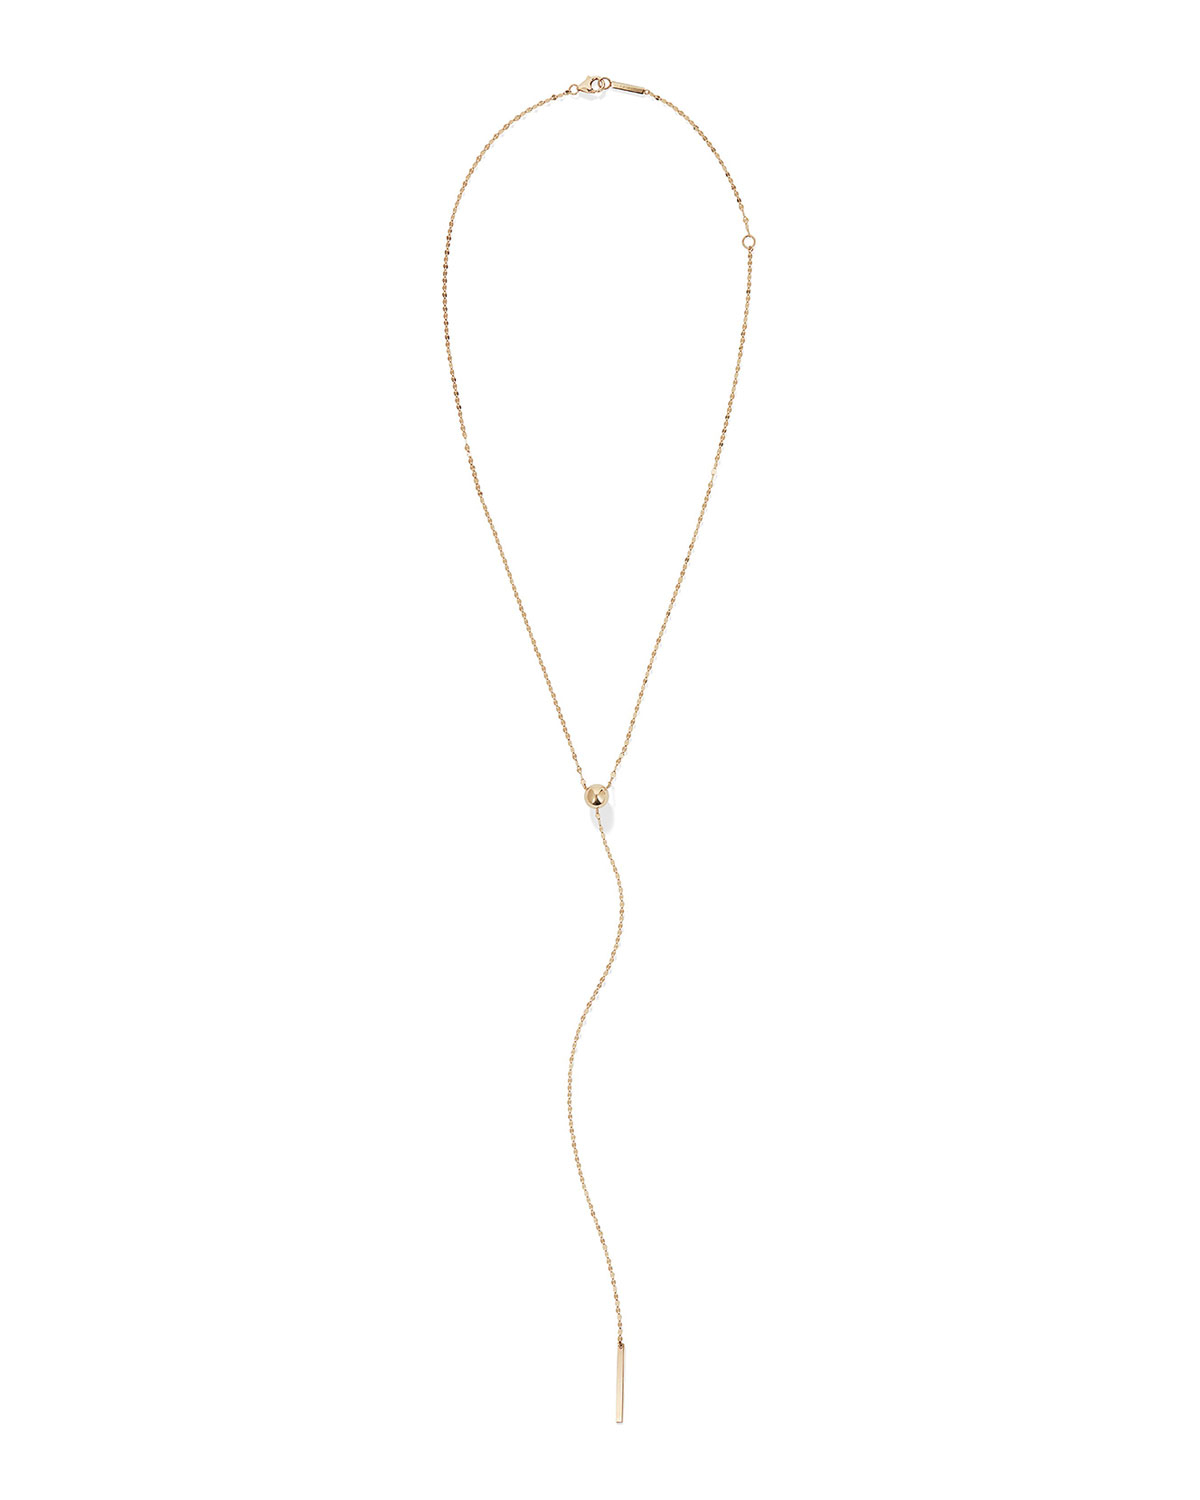 14k Gold Bead Y Drop Lariat Necklace With Regard To Most Recently Released String Of Beads Y Necklaces (View 6 of 25)